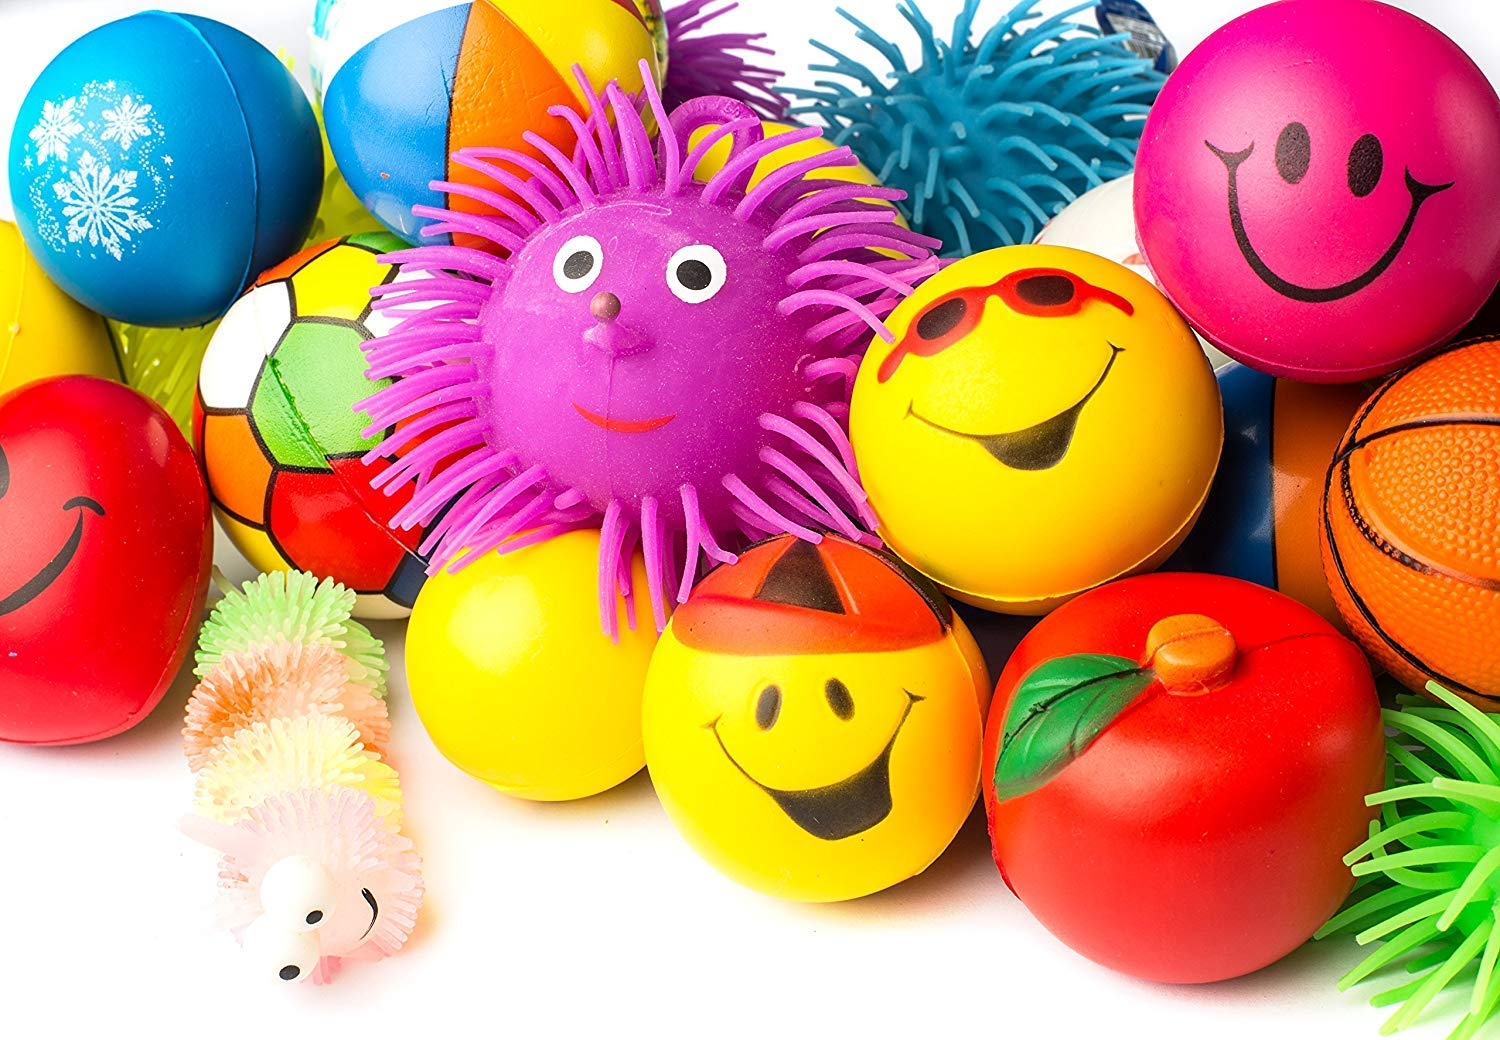 Buy WP Stress Balls Puffer Stress Relief Toys Value Assortment Bulk Stress  Relax Toy Balls, Squeeze Ball Puffer Ball Assortment Most Popular Selection  of Hand Exercise Balls & Therapy Balls Pack of